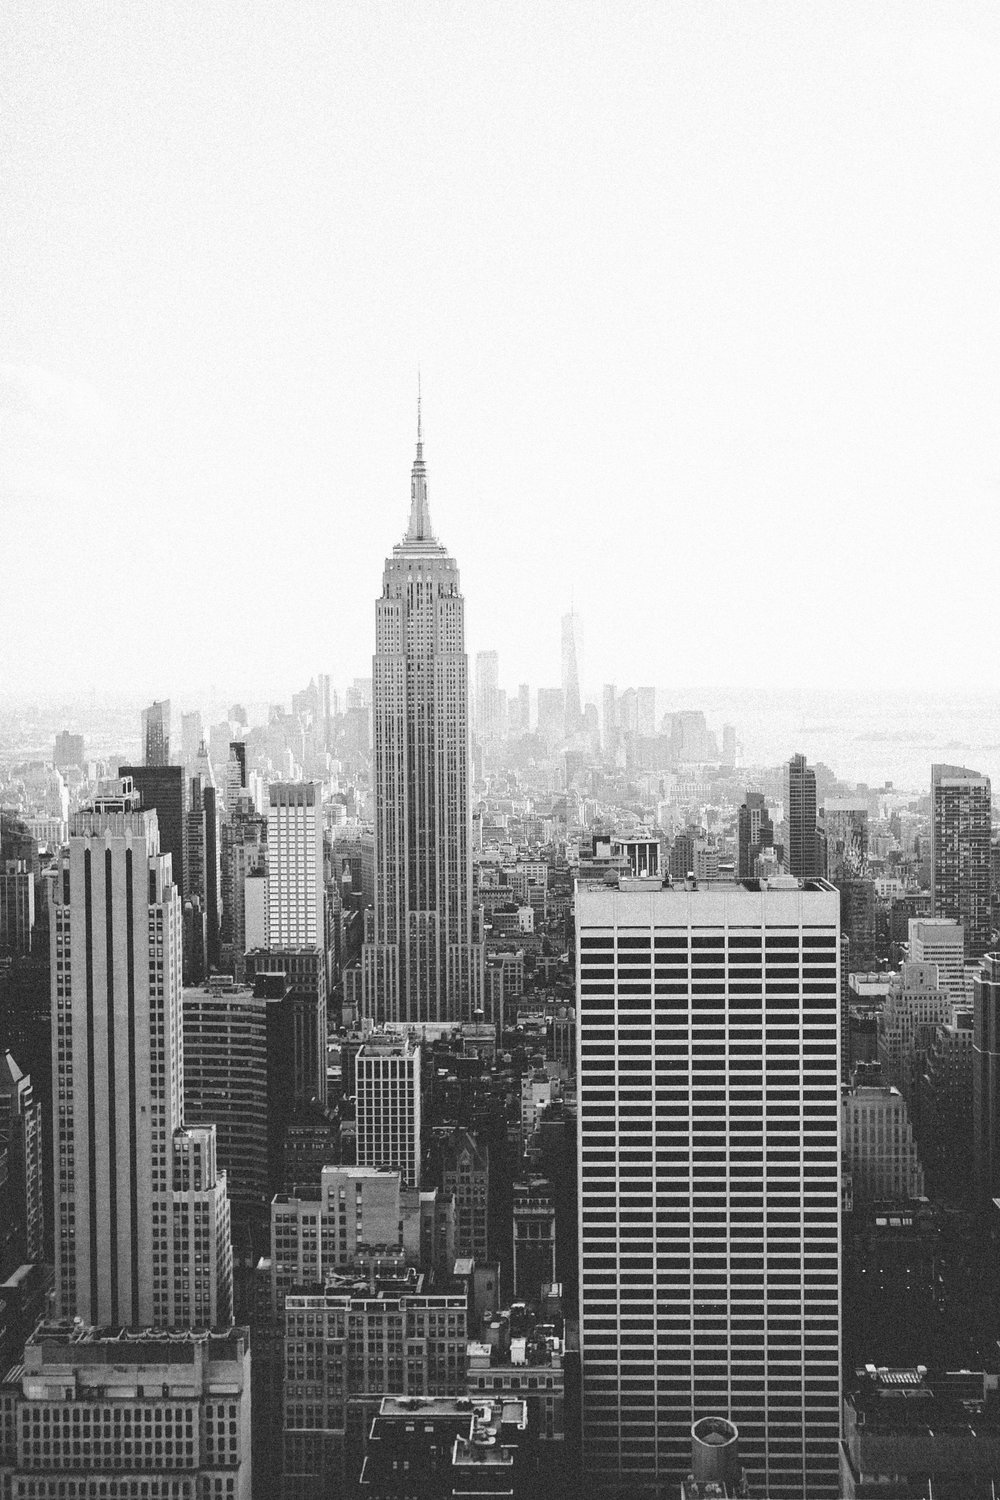 Top of the Rock Observation Deck Empire State Building New York City by Mary Kate Steele Photography